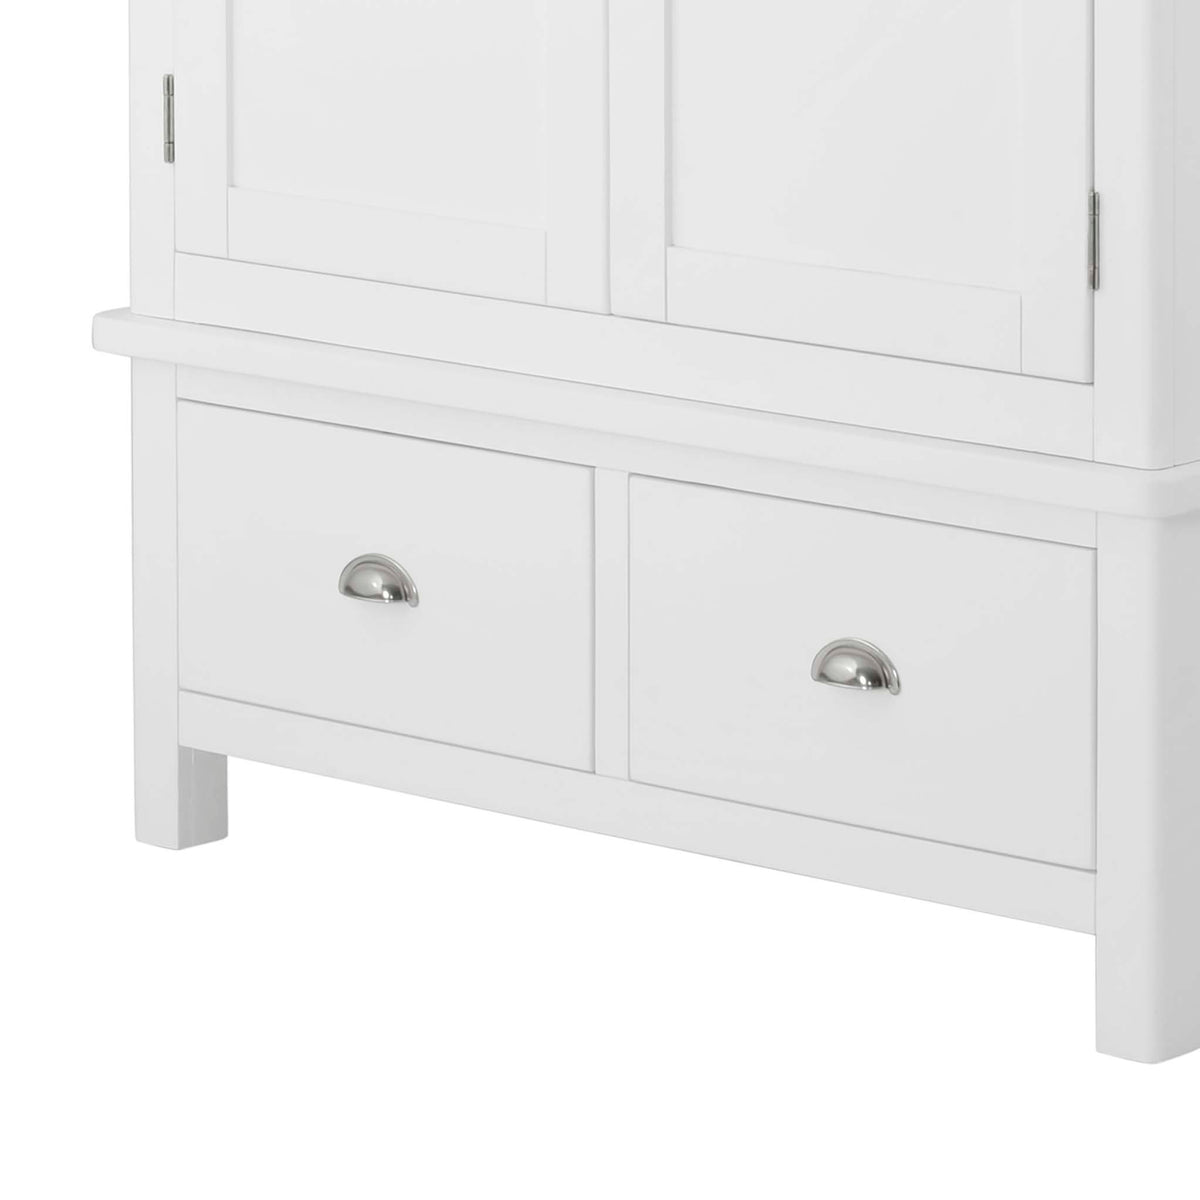 The Padstow White Wooden Double Wardrobe with Drawers - Close Up of Lower Drawers